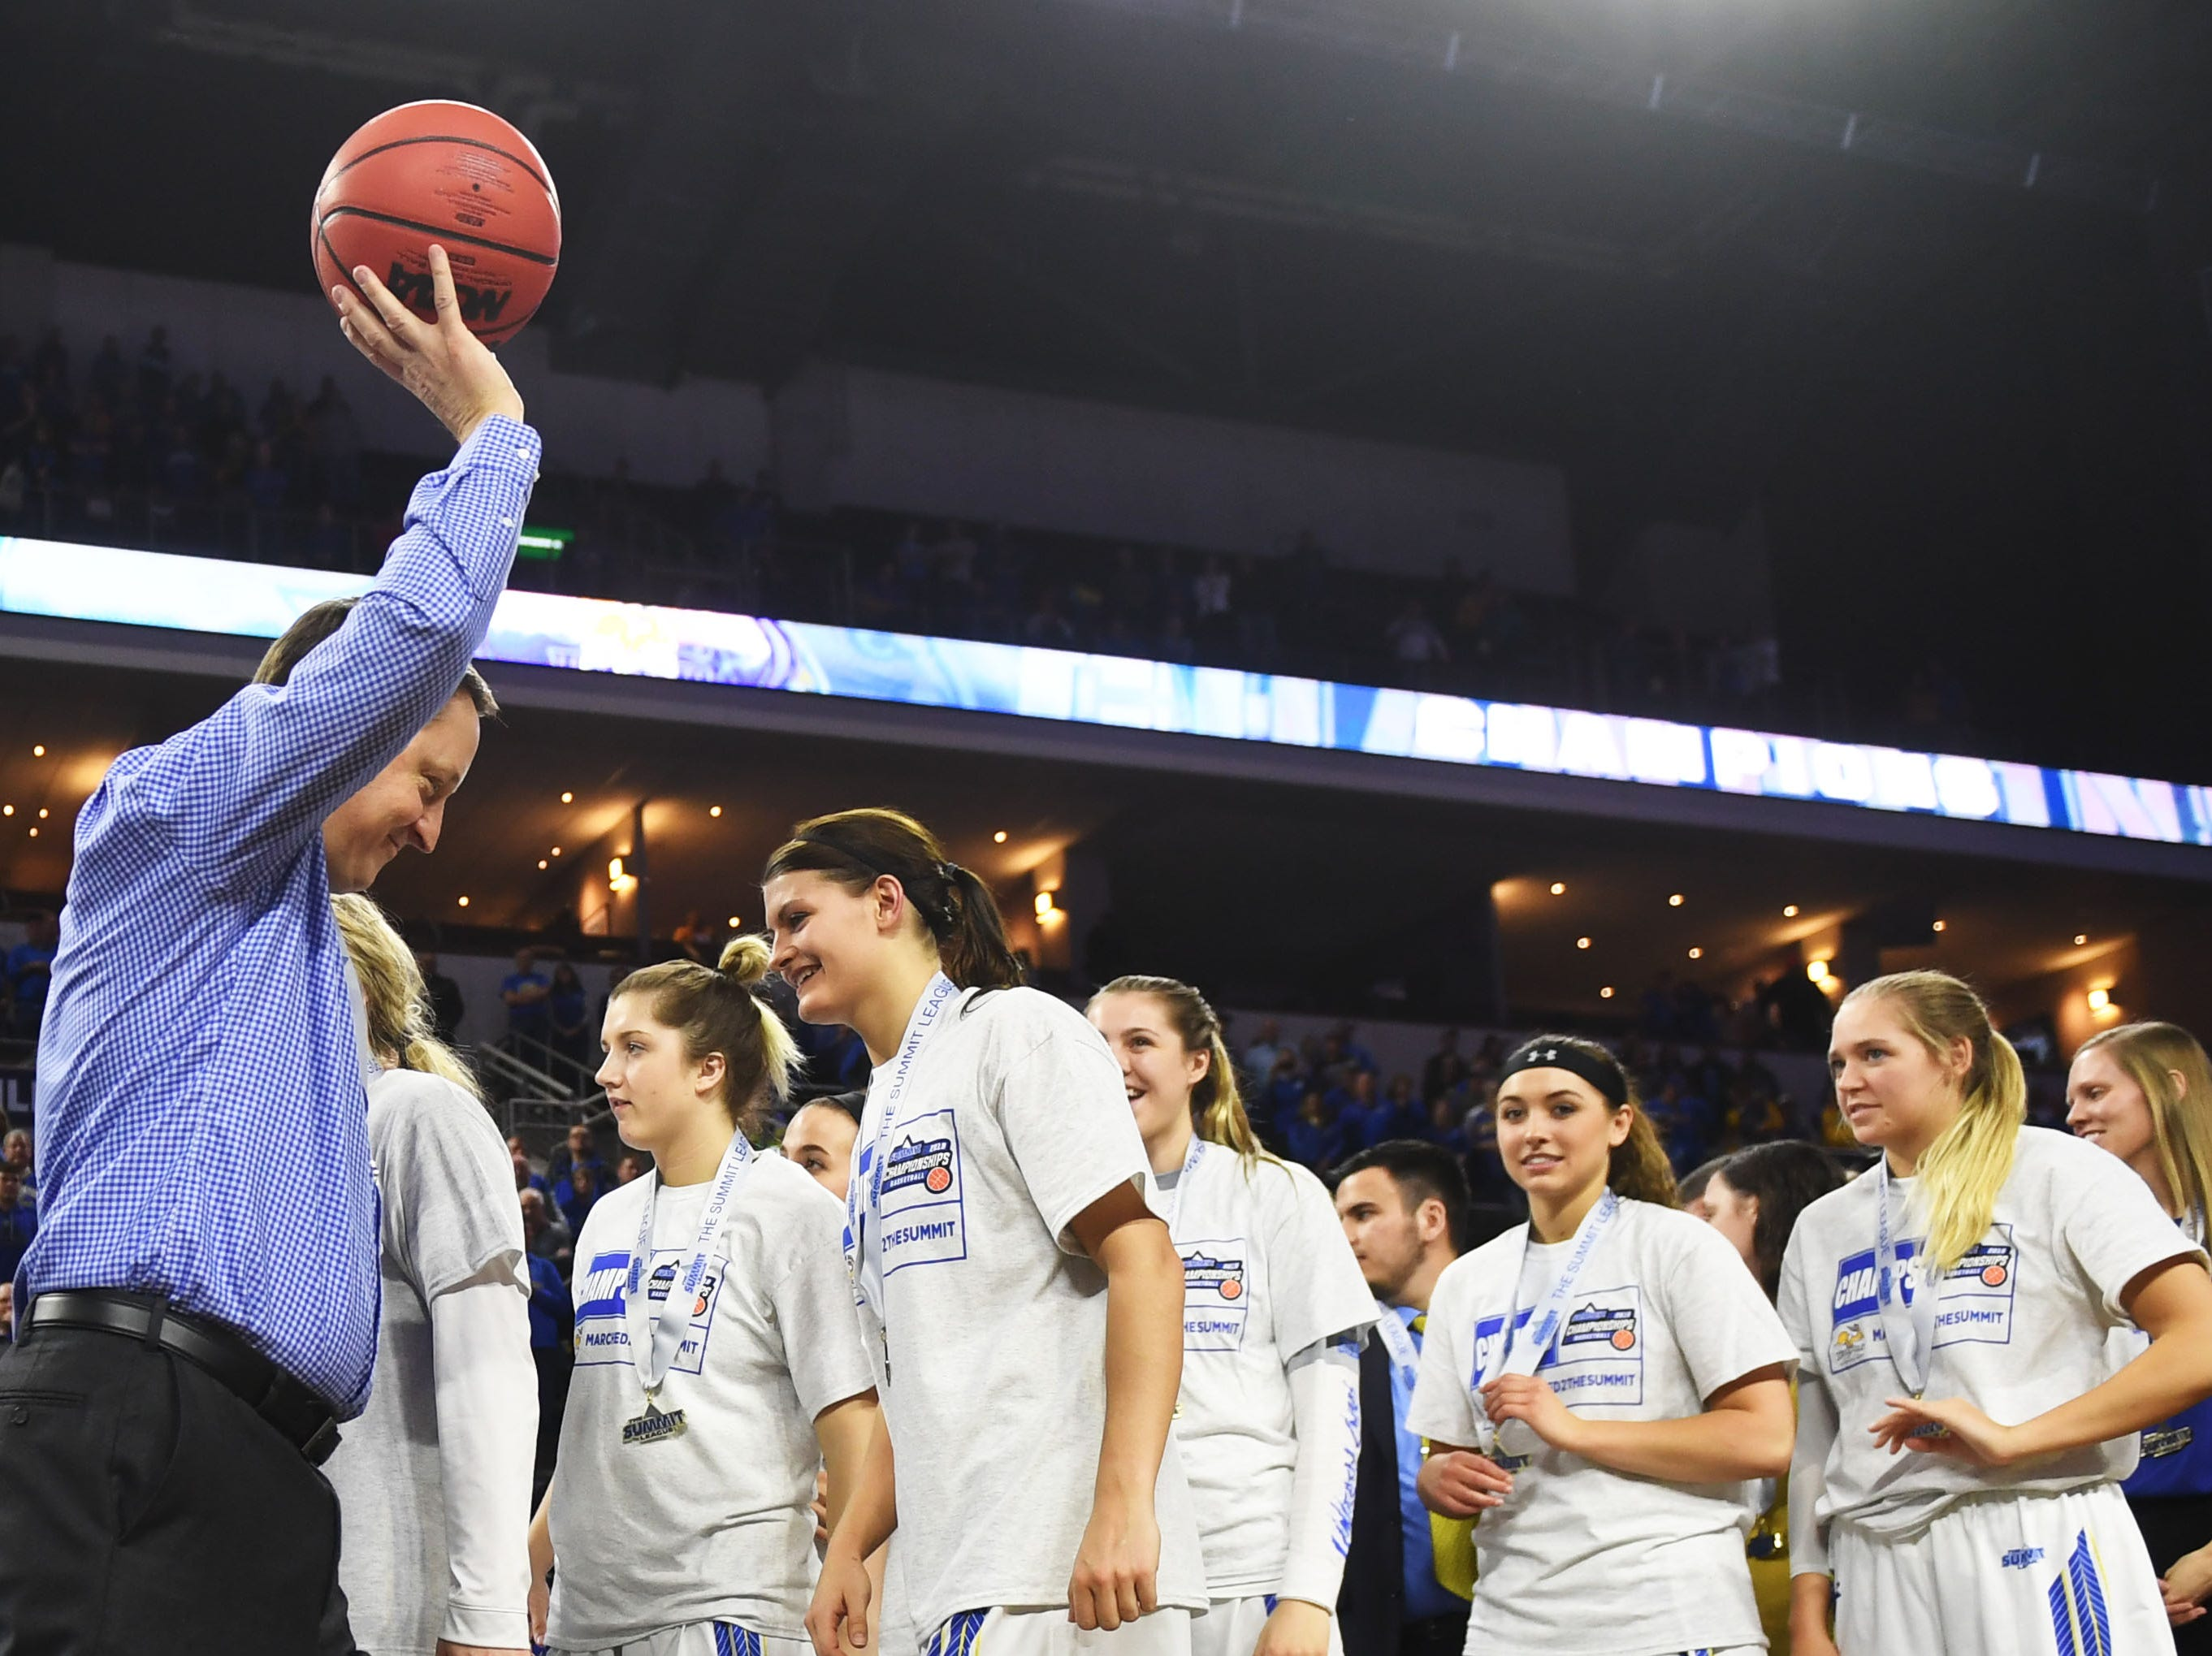 SDSU's head coach Aaron Johnston is recognized after the win against USD Tuesday, March 12, in the Summit League women's championship at the Denny Sanford Premier Center in Sioux Falls.